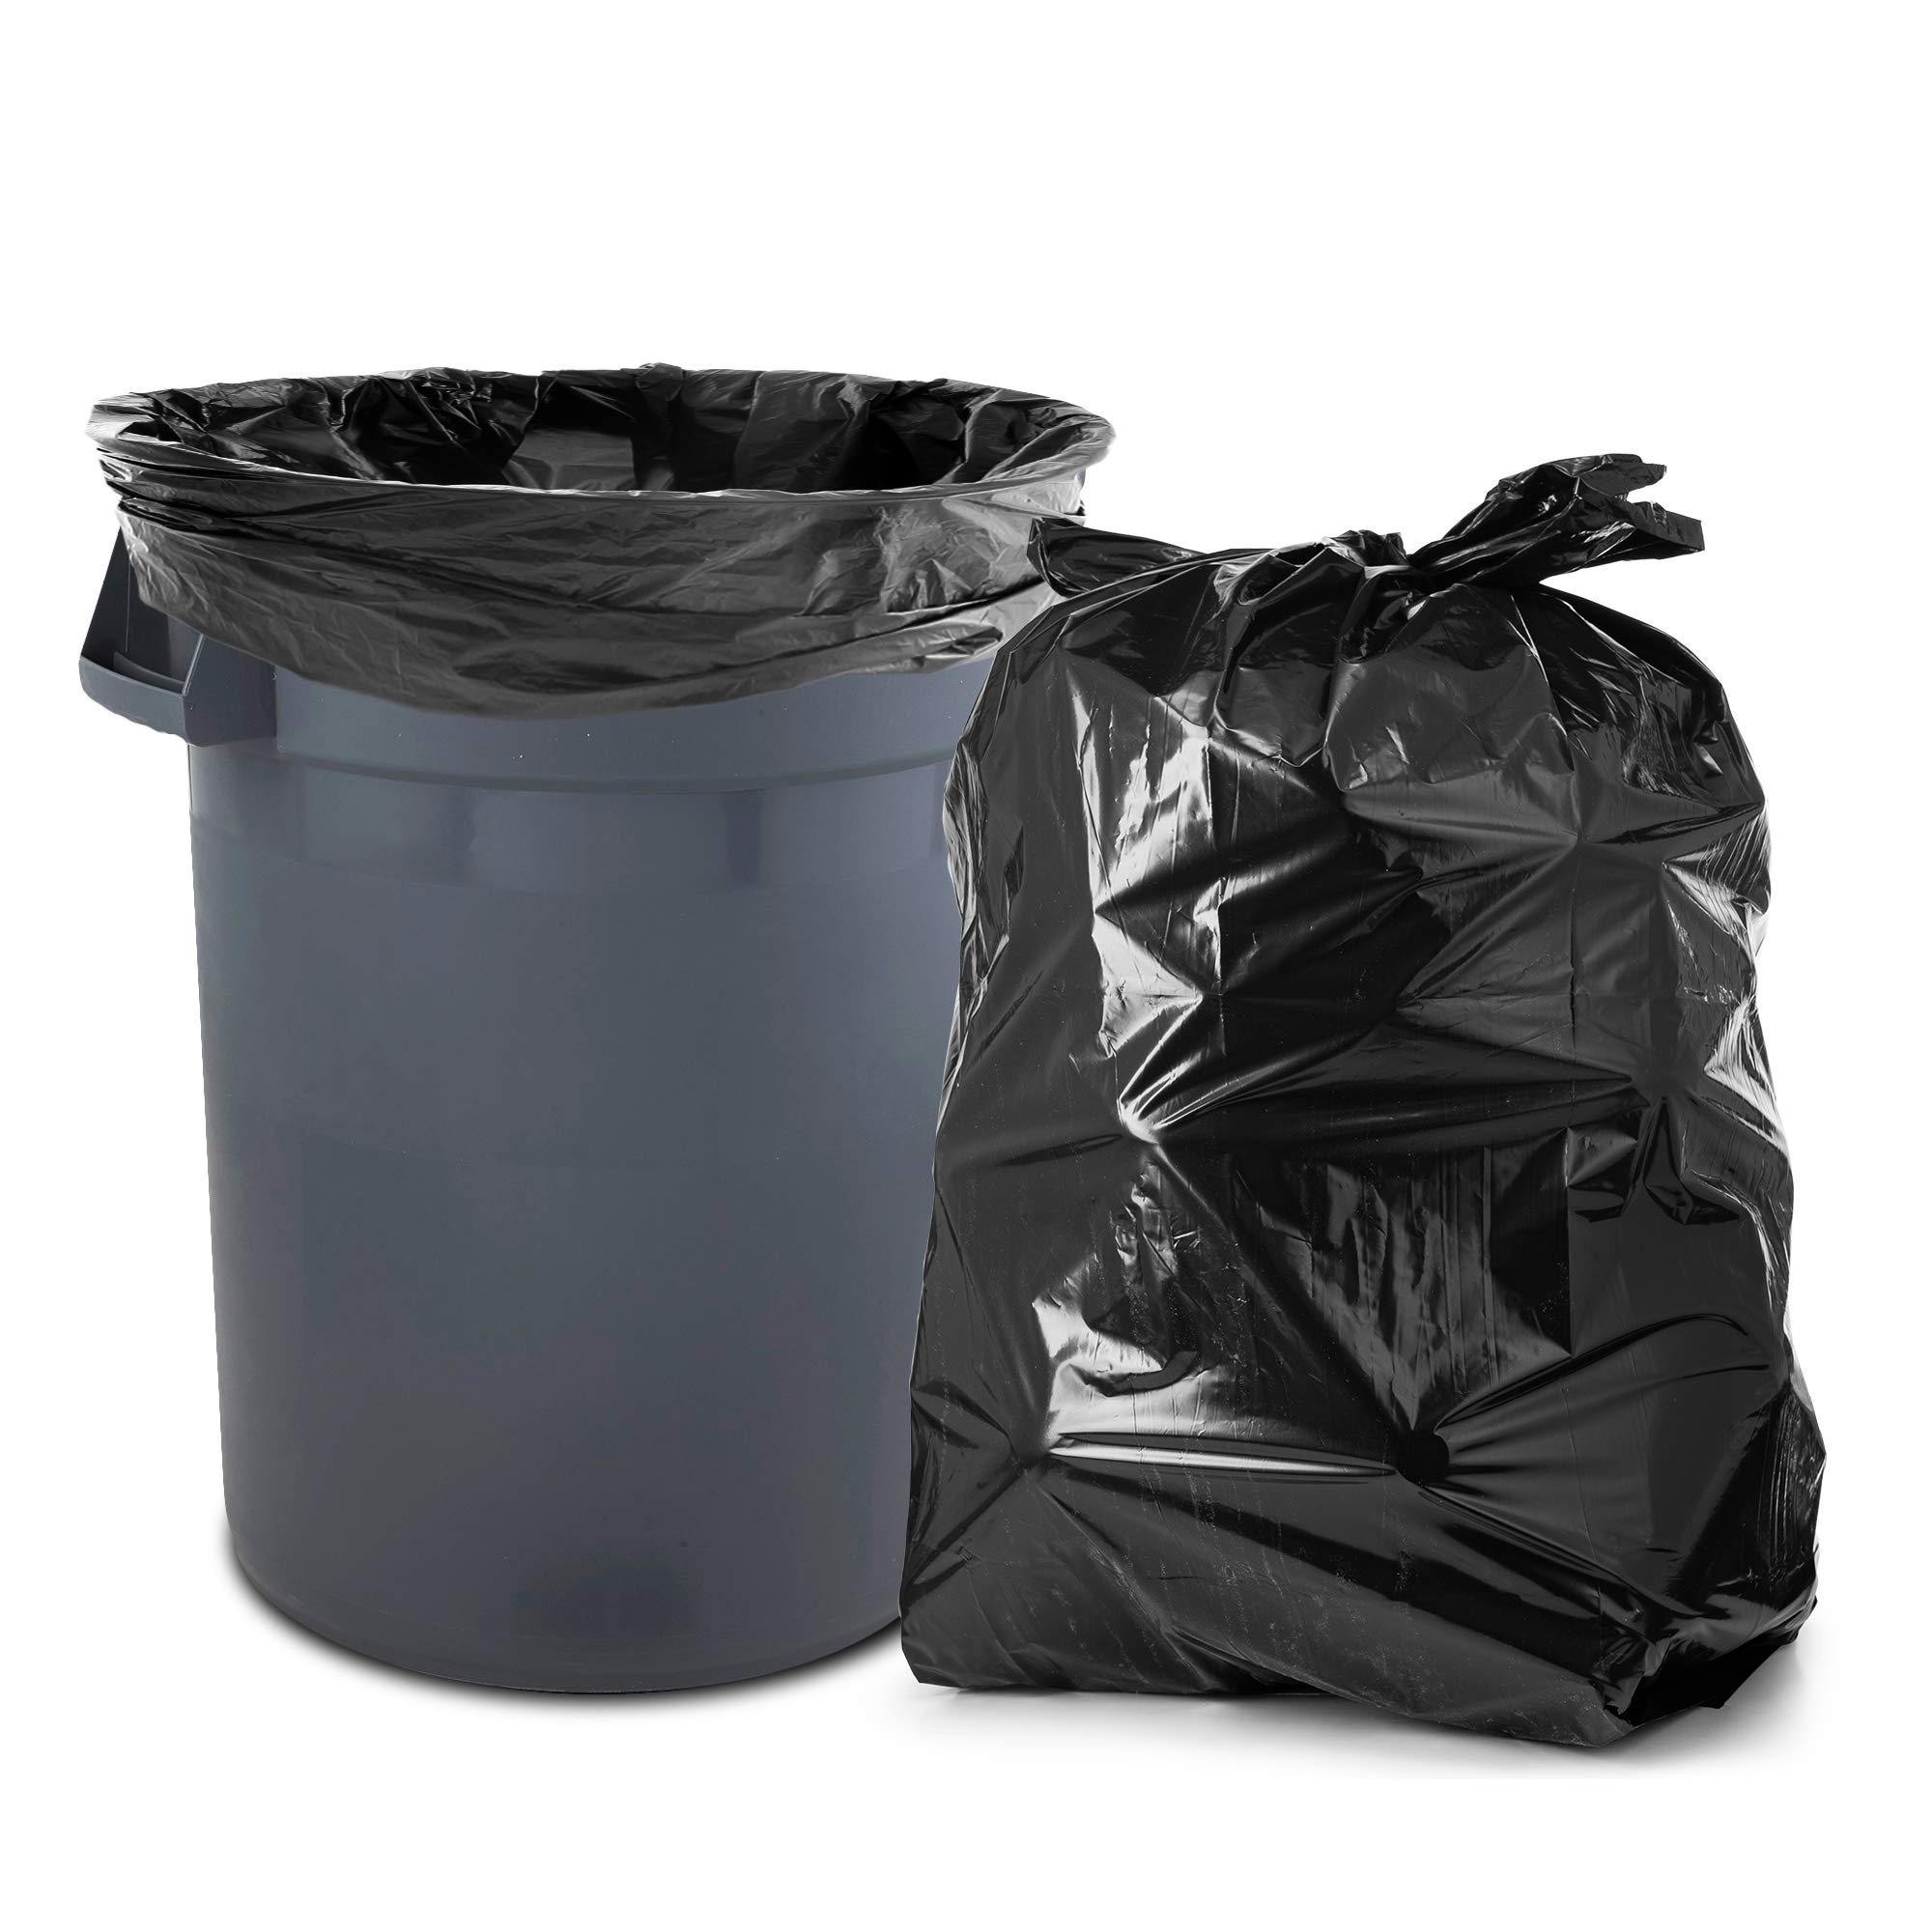 55-60 Gallon Trash Bags, 100/Count, Large Black Garbage Bags, 38'' W x 58'' H, 1.2 Mil by Tasker (Image #3)